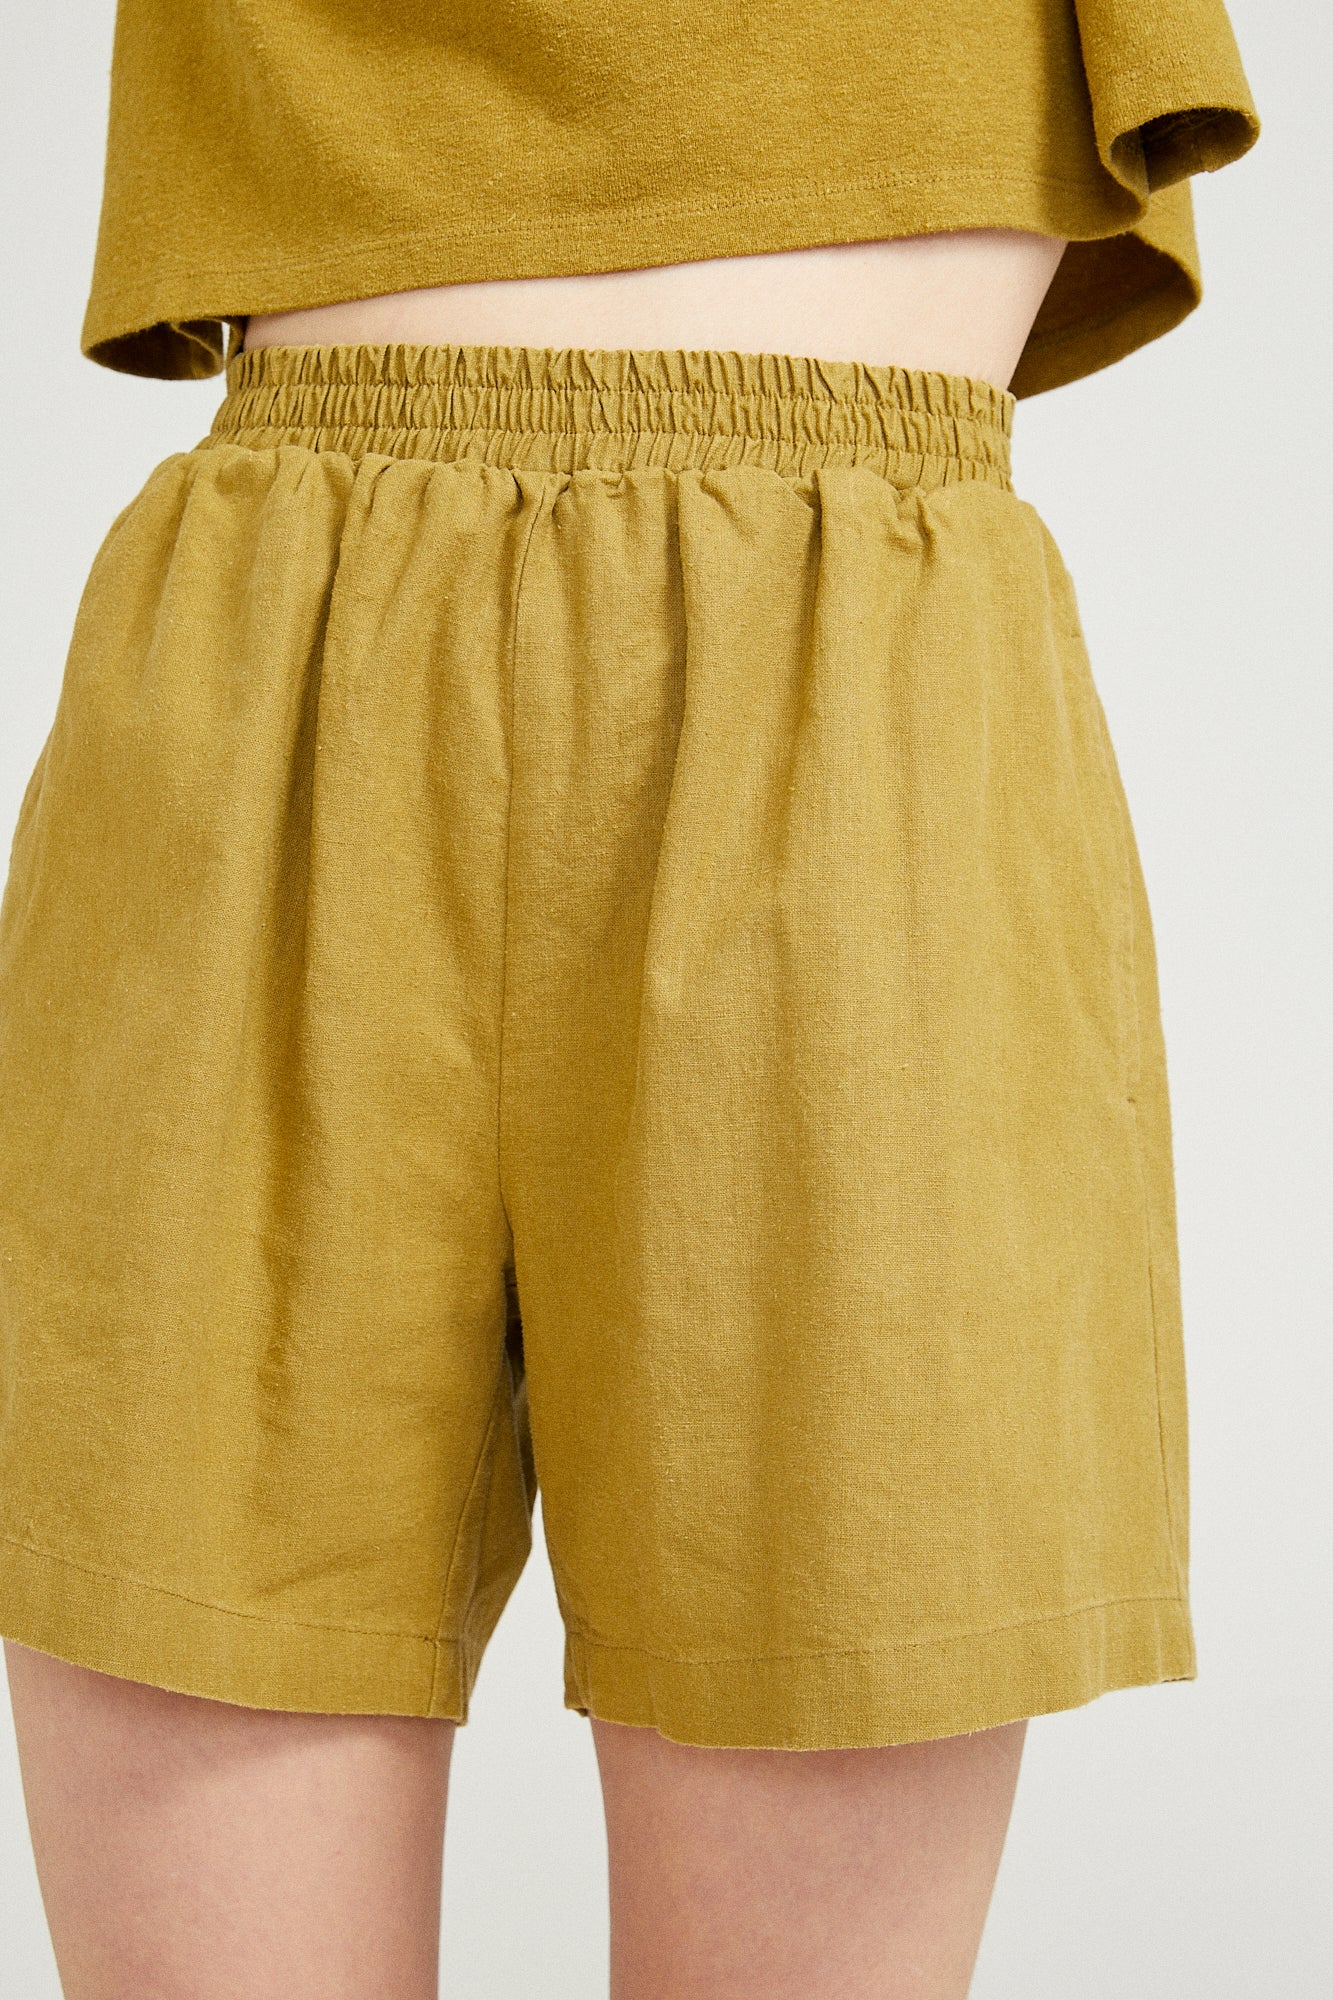 Hemp Summer Short